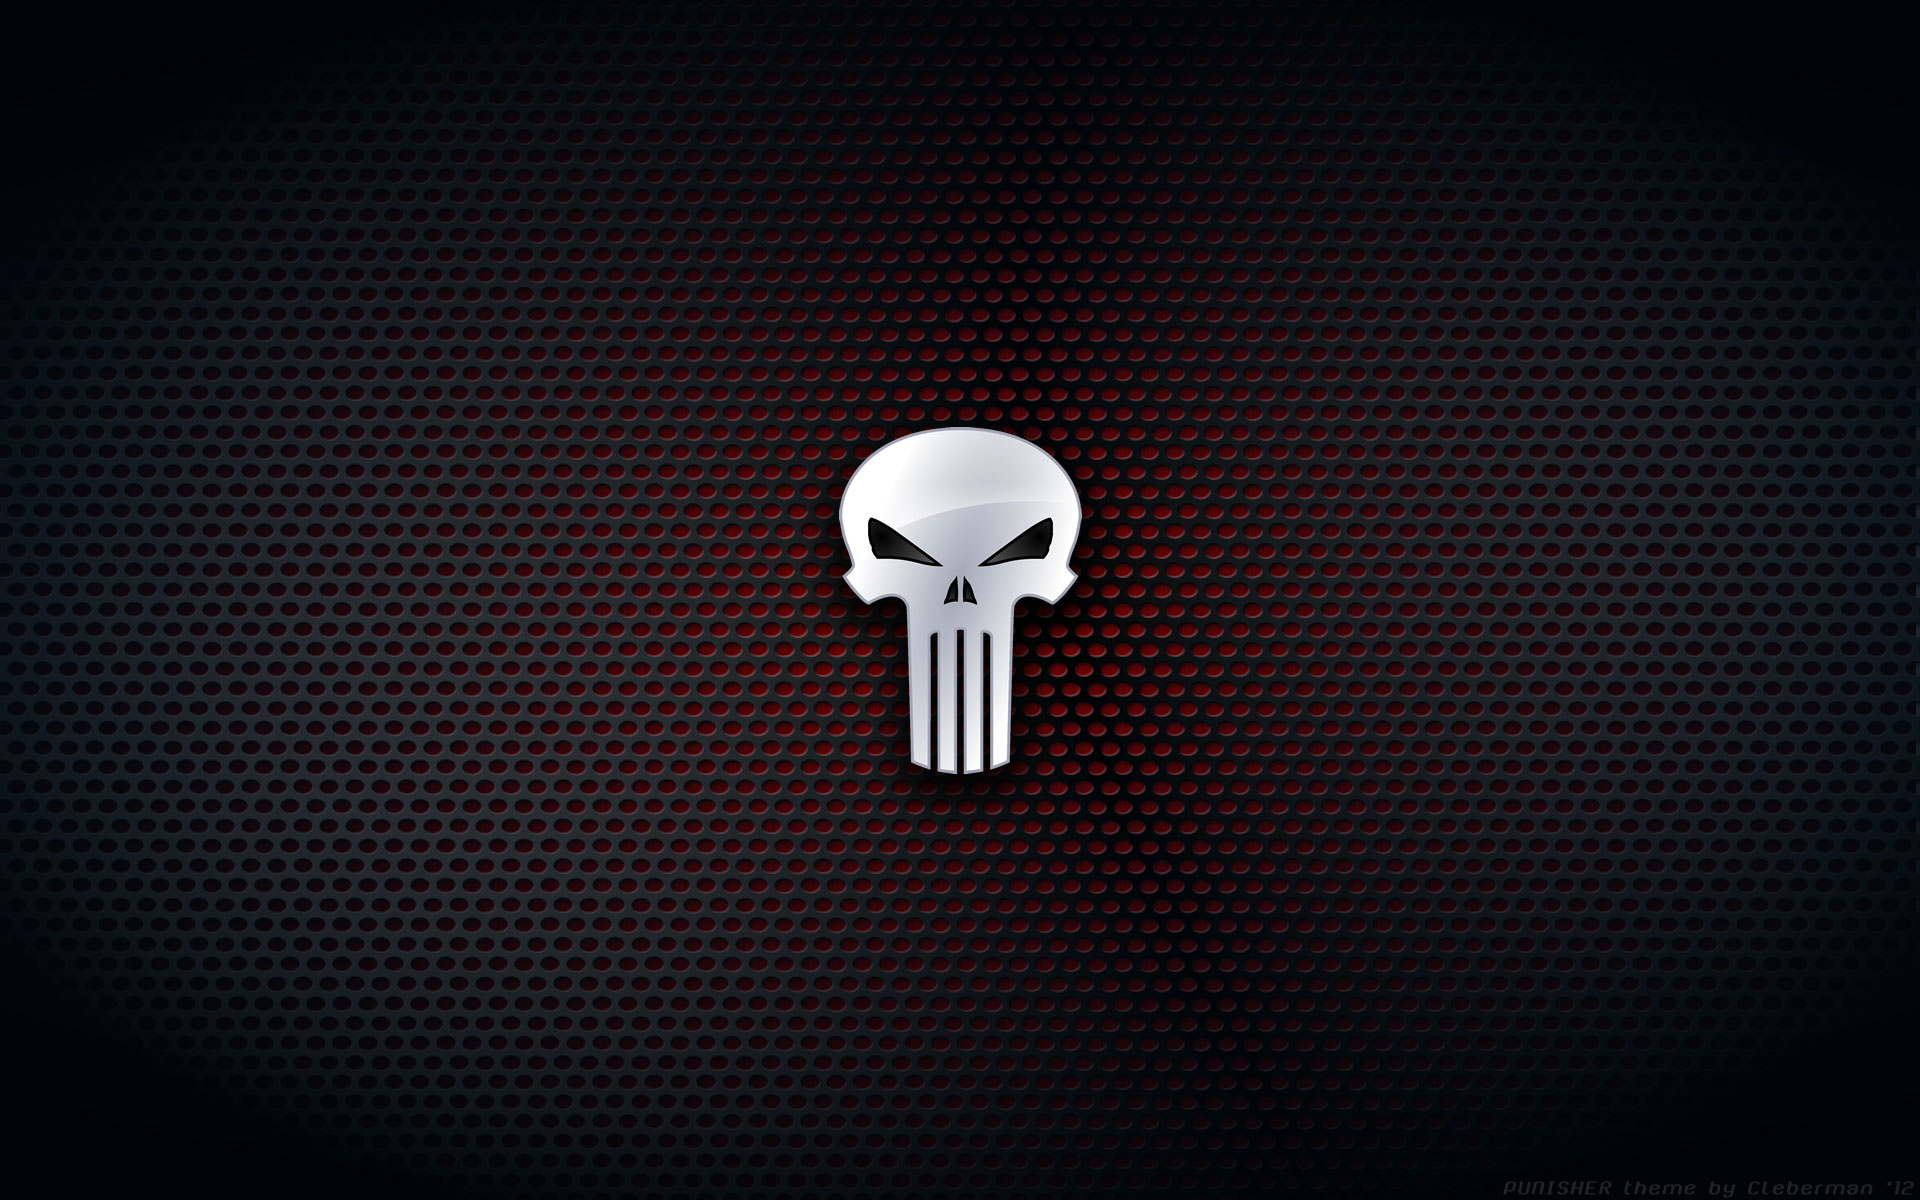 logo backgrounds wallpapers logos backgrounds1 brands 1920x1200